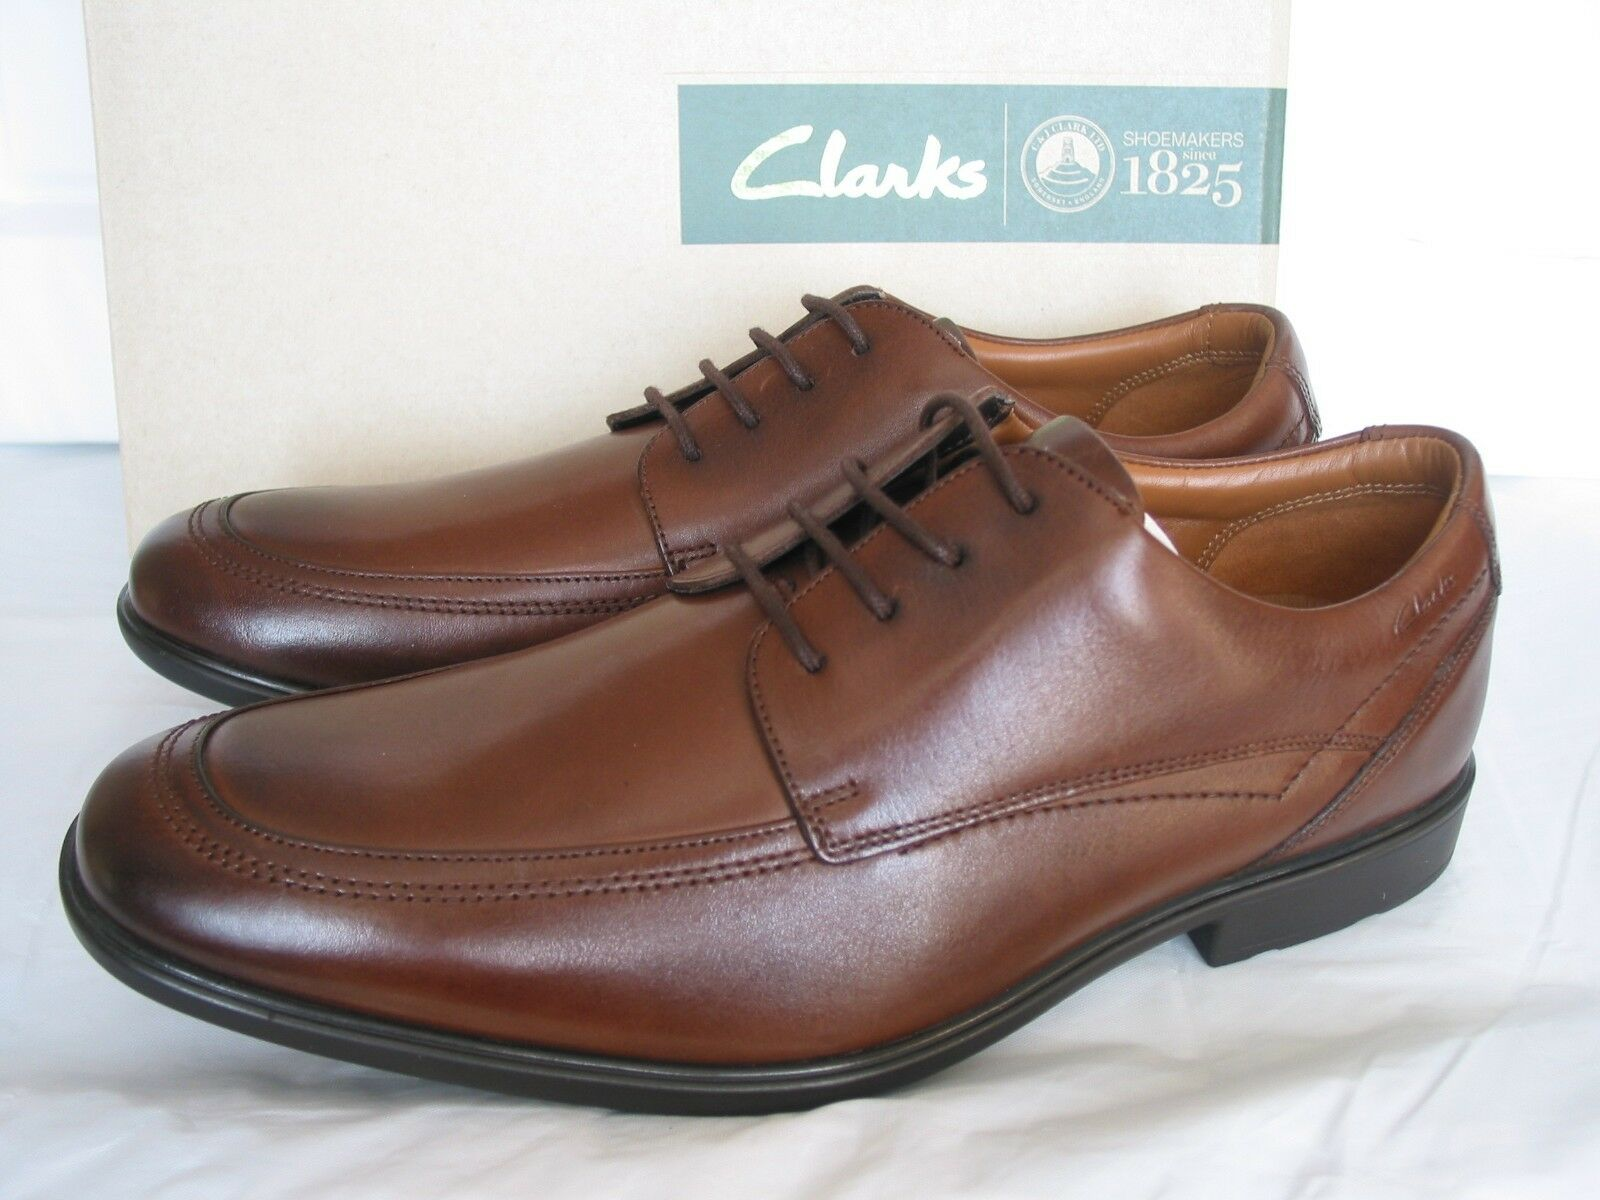 NEW CLARKS GOS WORTH APRON SOFT BROWN LEATHER SHOES SIZE 7 & 7.5